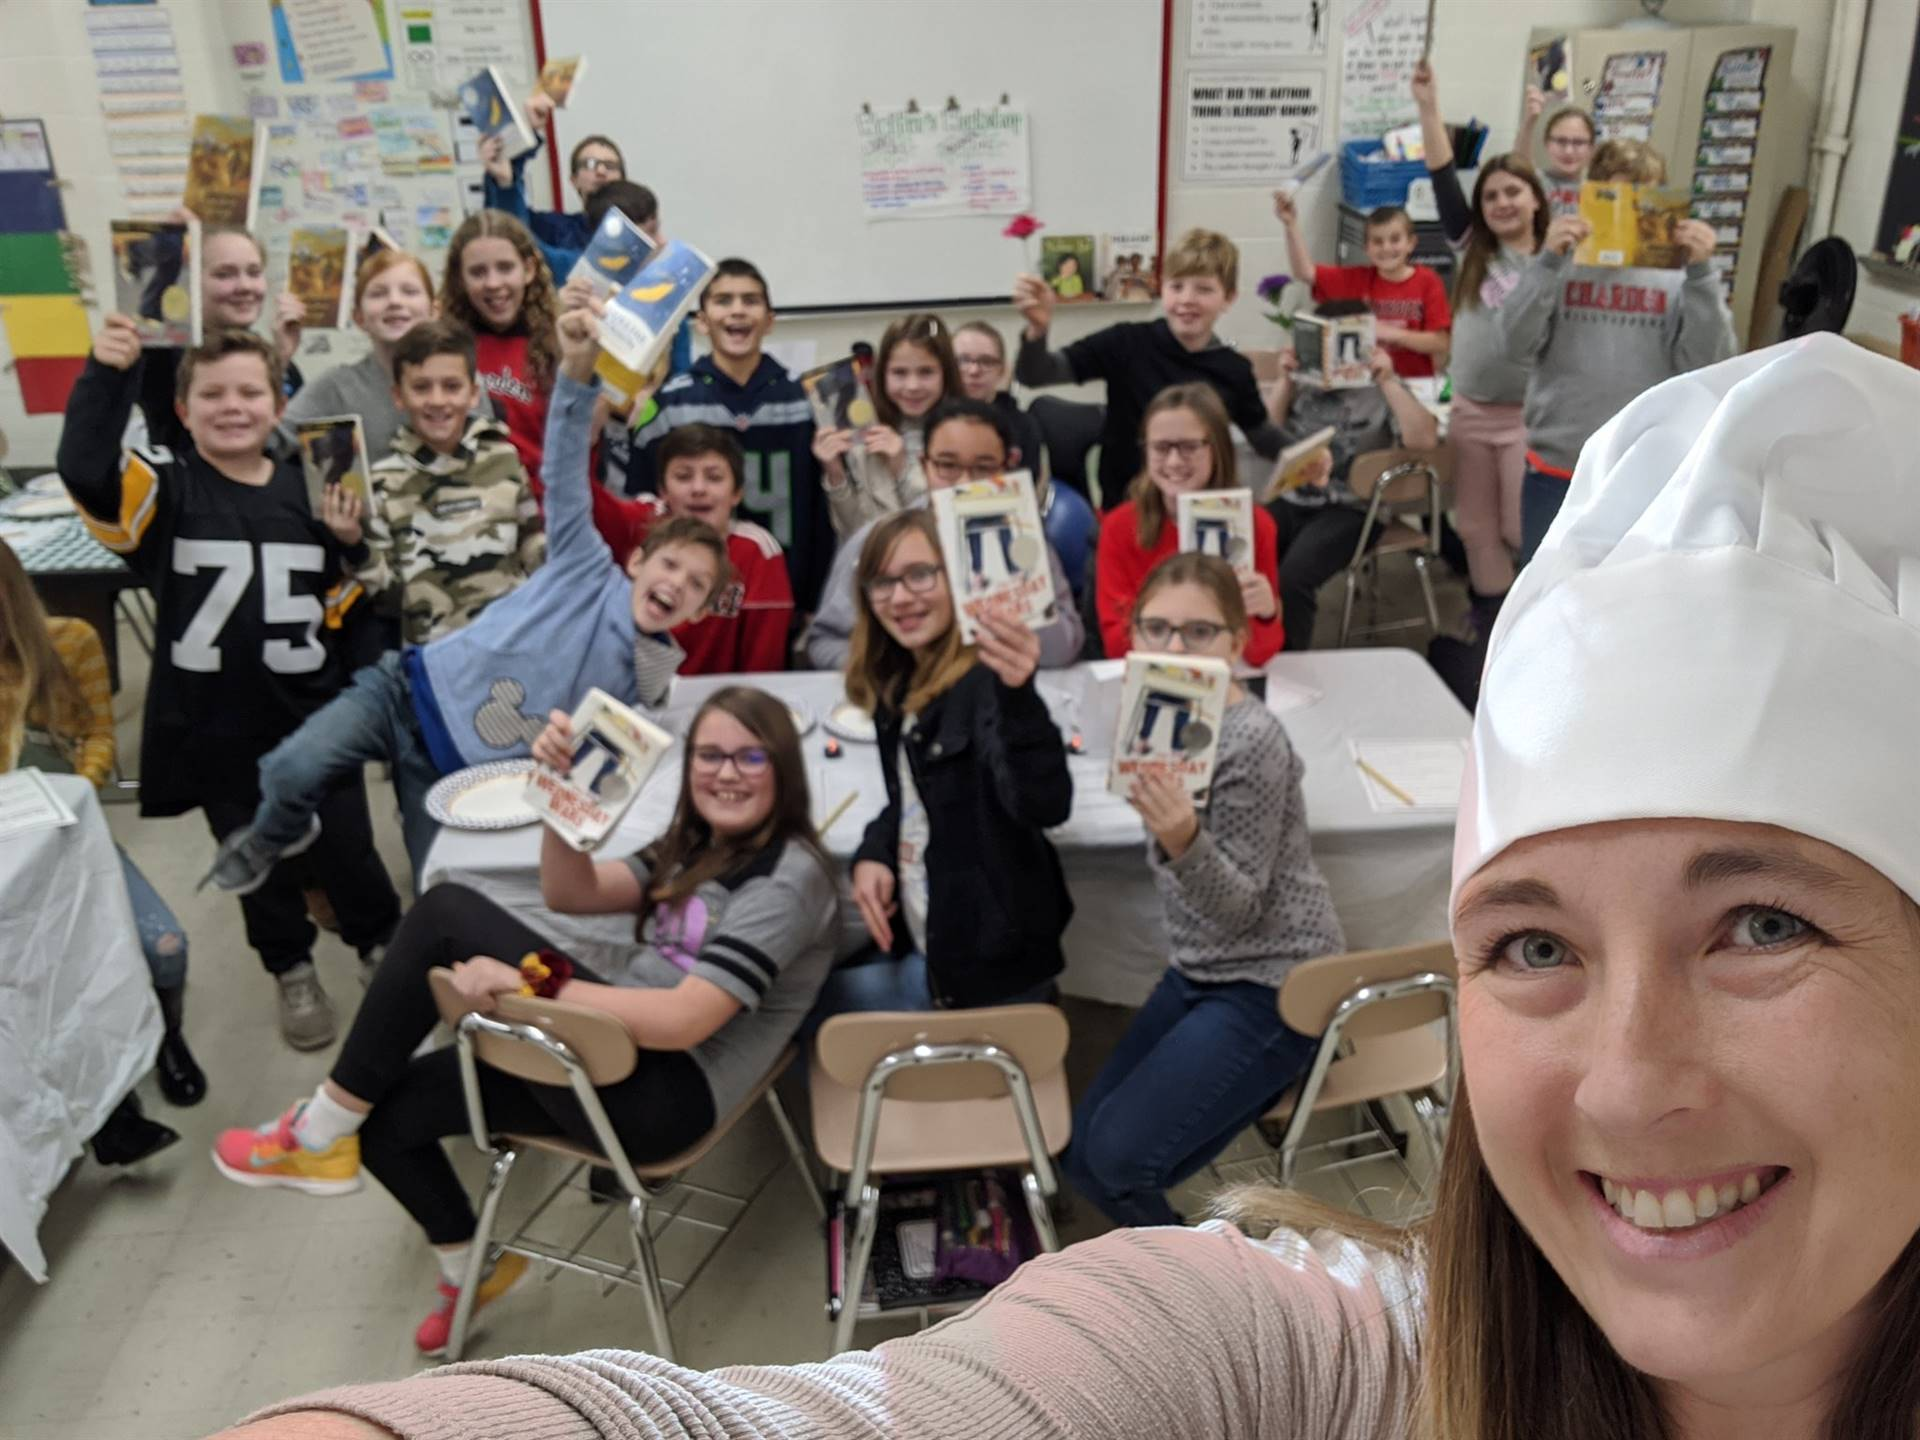 Photo 6:  English Language Arts teacher Mrs. Monsman wearing a chef's hat with her students all